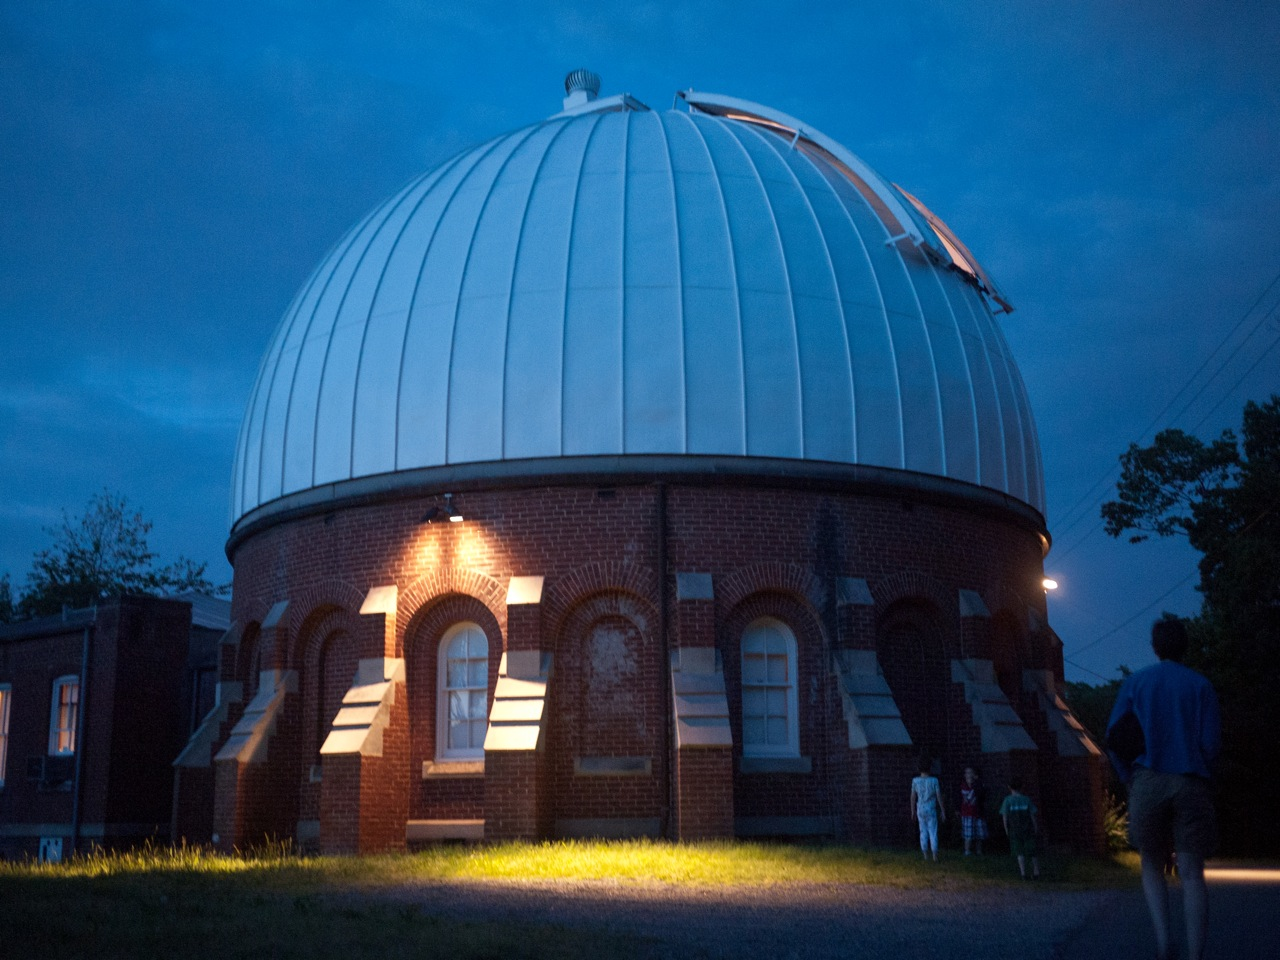 Leander McCormick Observatory at night